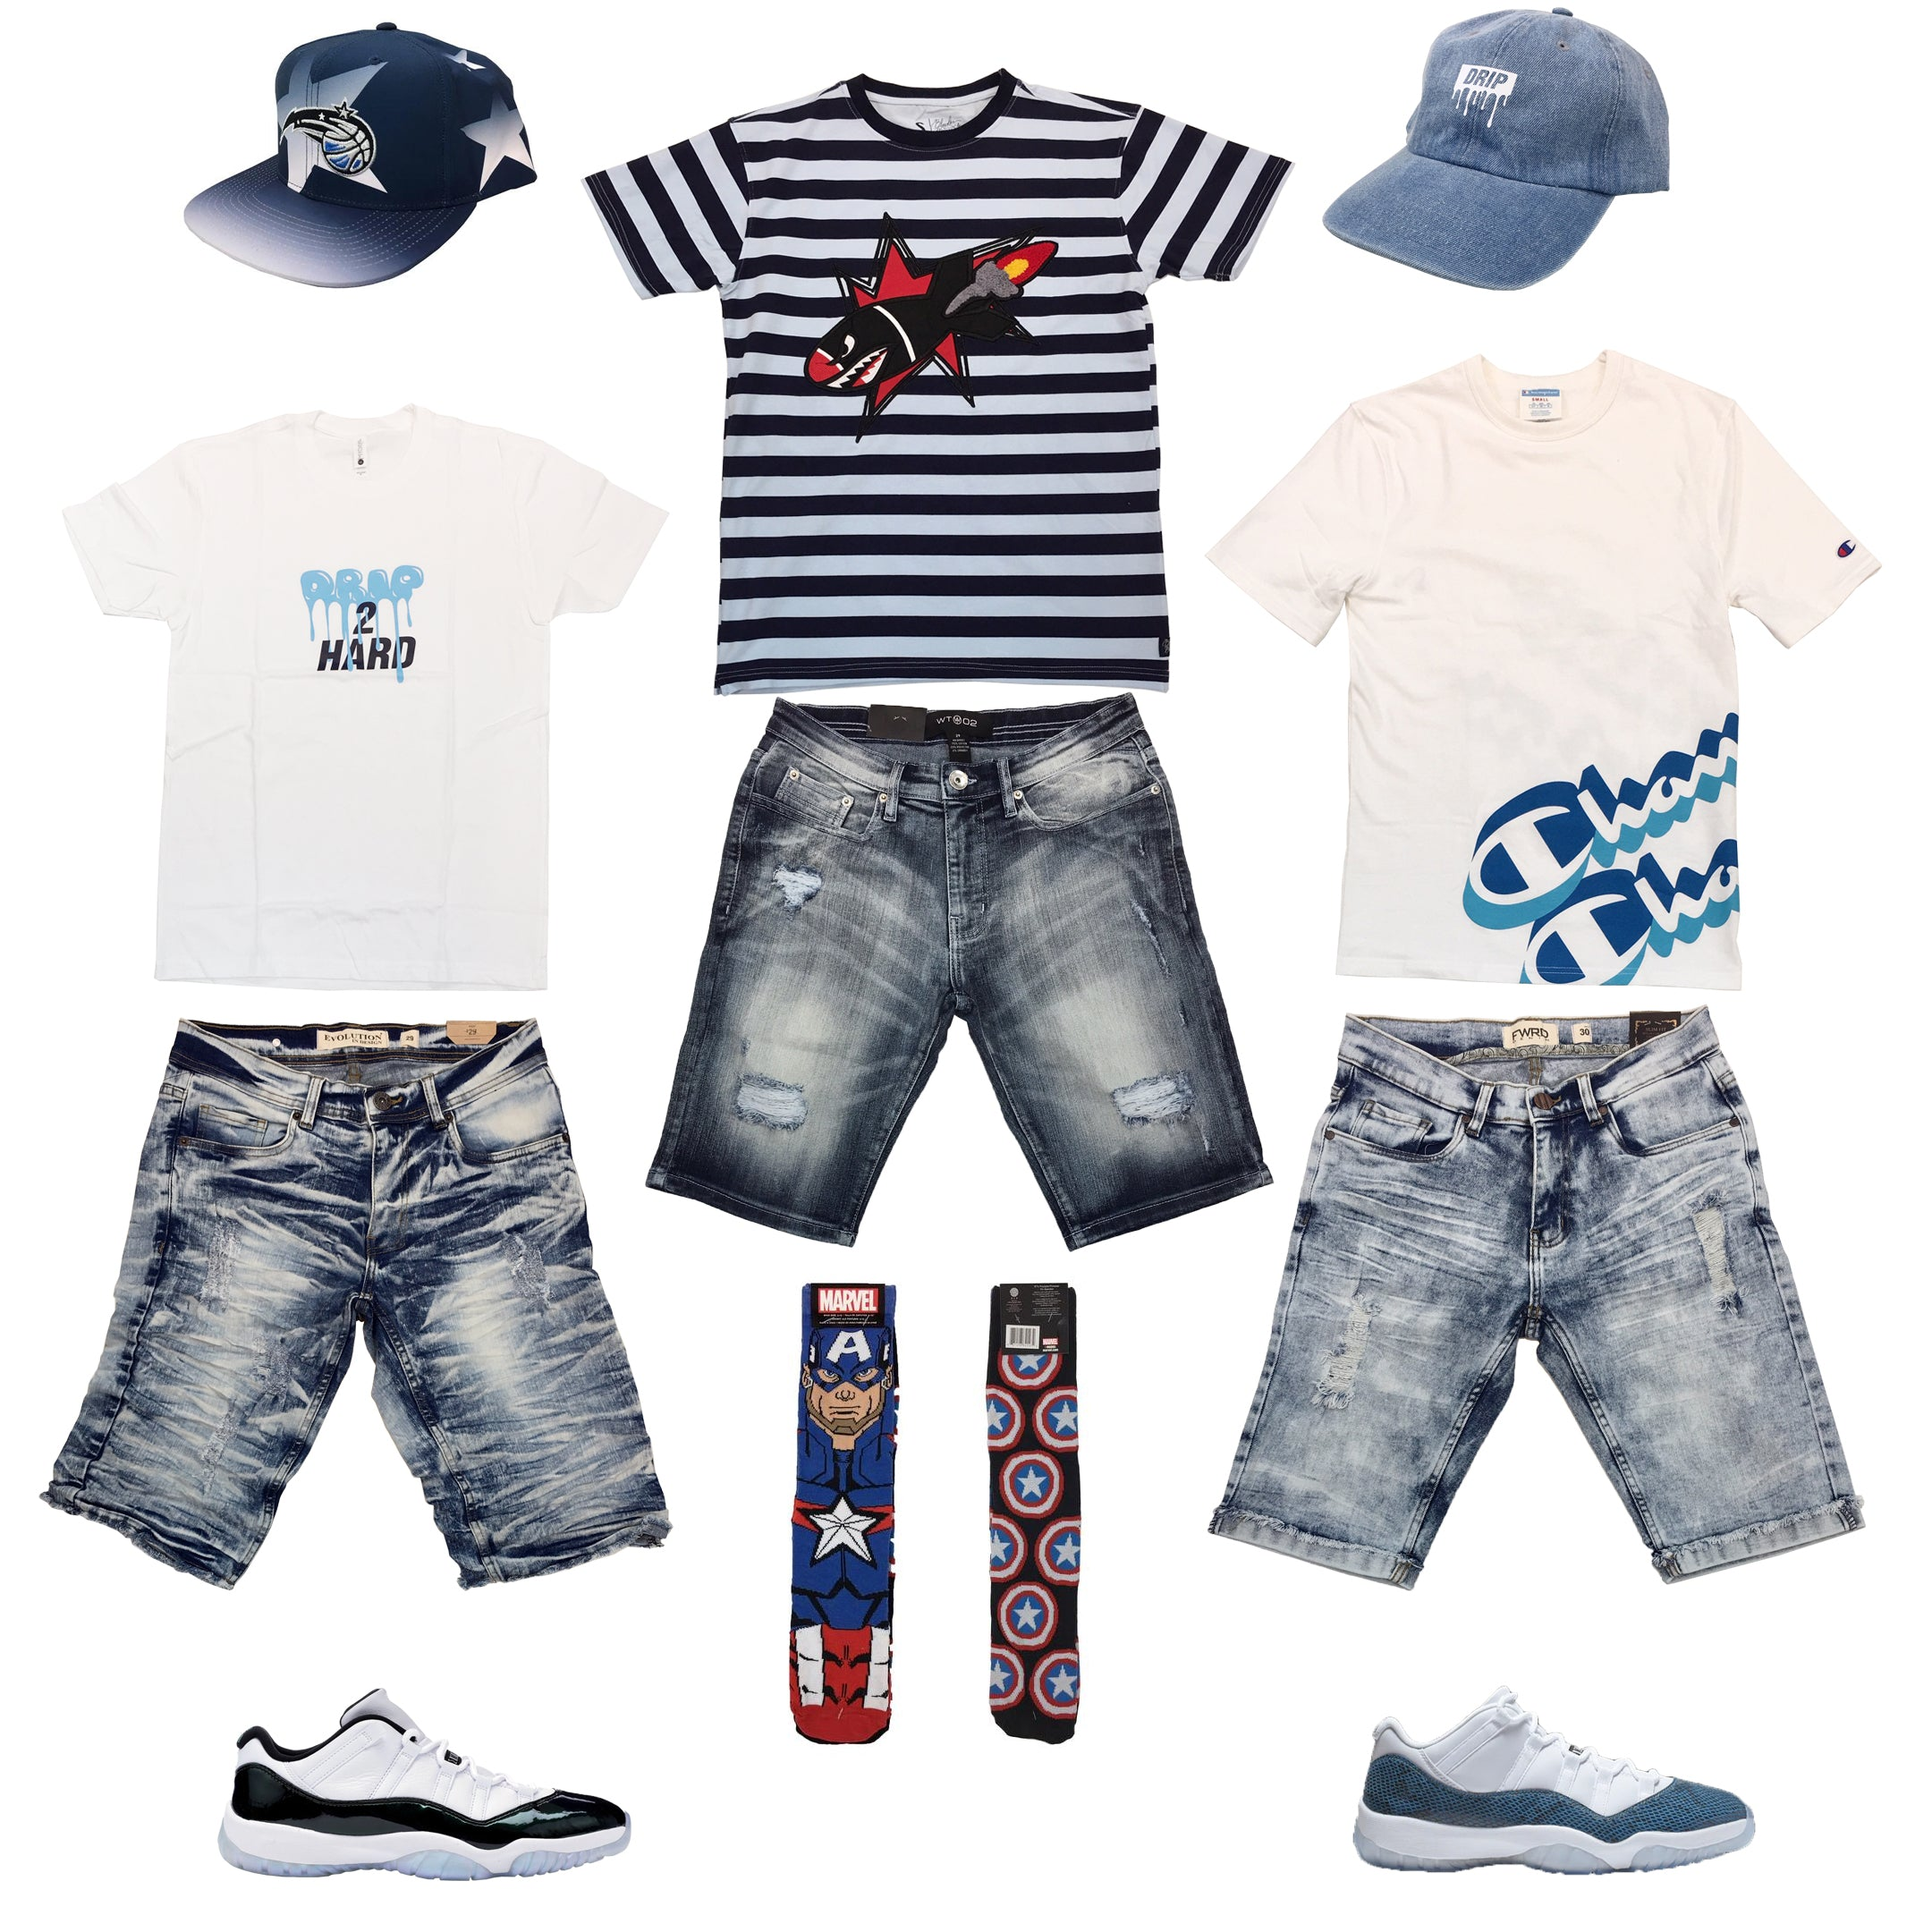 outfits to go with jordan 11